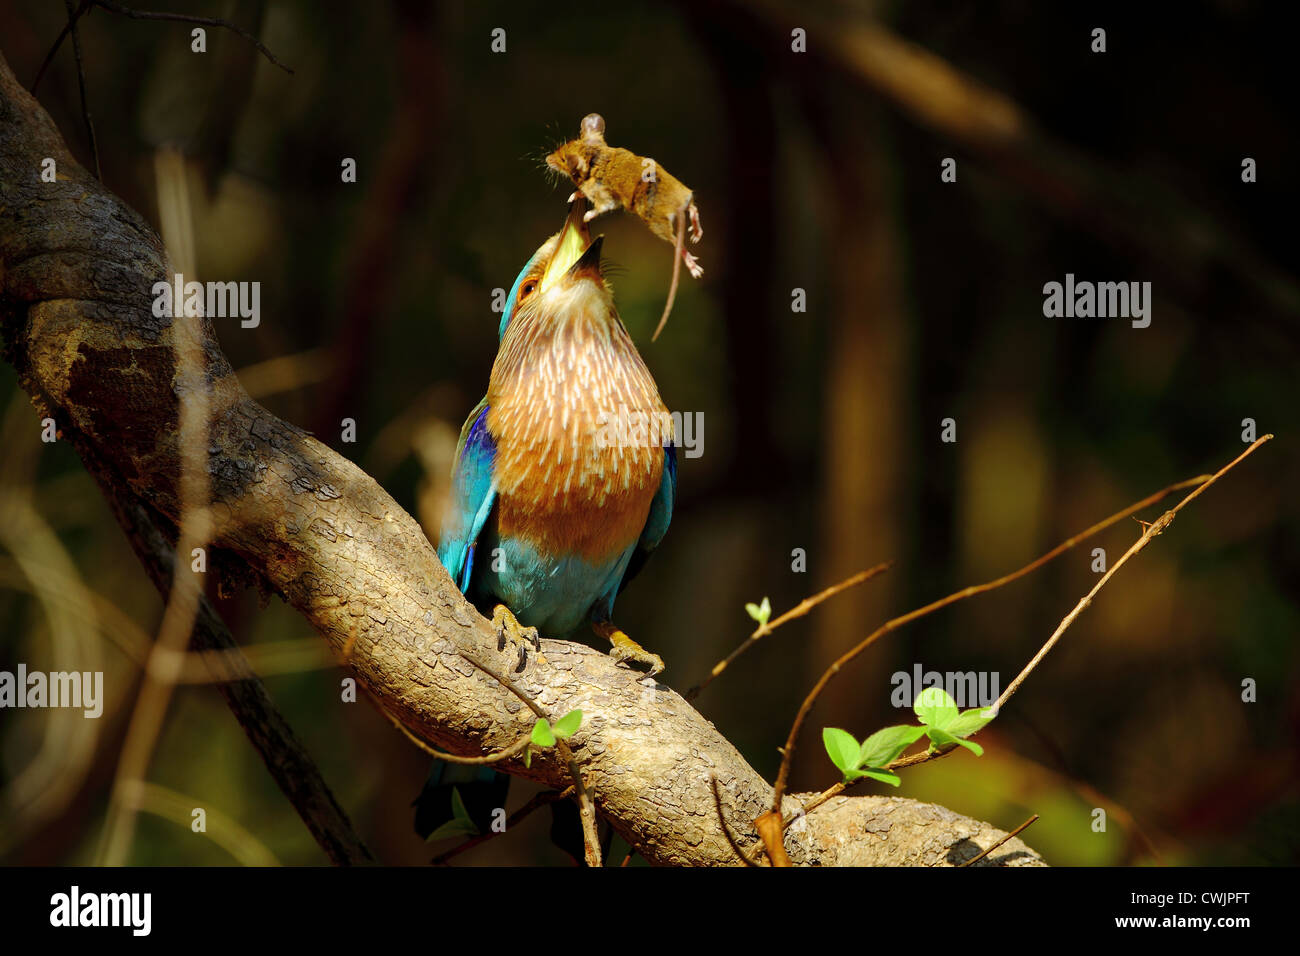 Indian Roller (Coracias benghalensis) with a field mouse in Tadoba Andhari Tiger Reserve, India - Stock Image